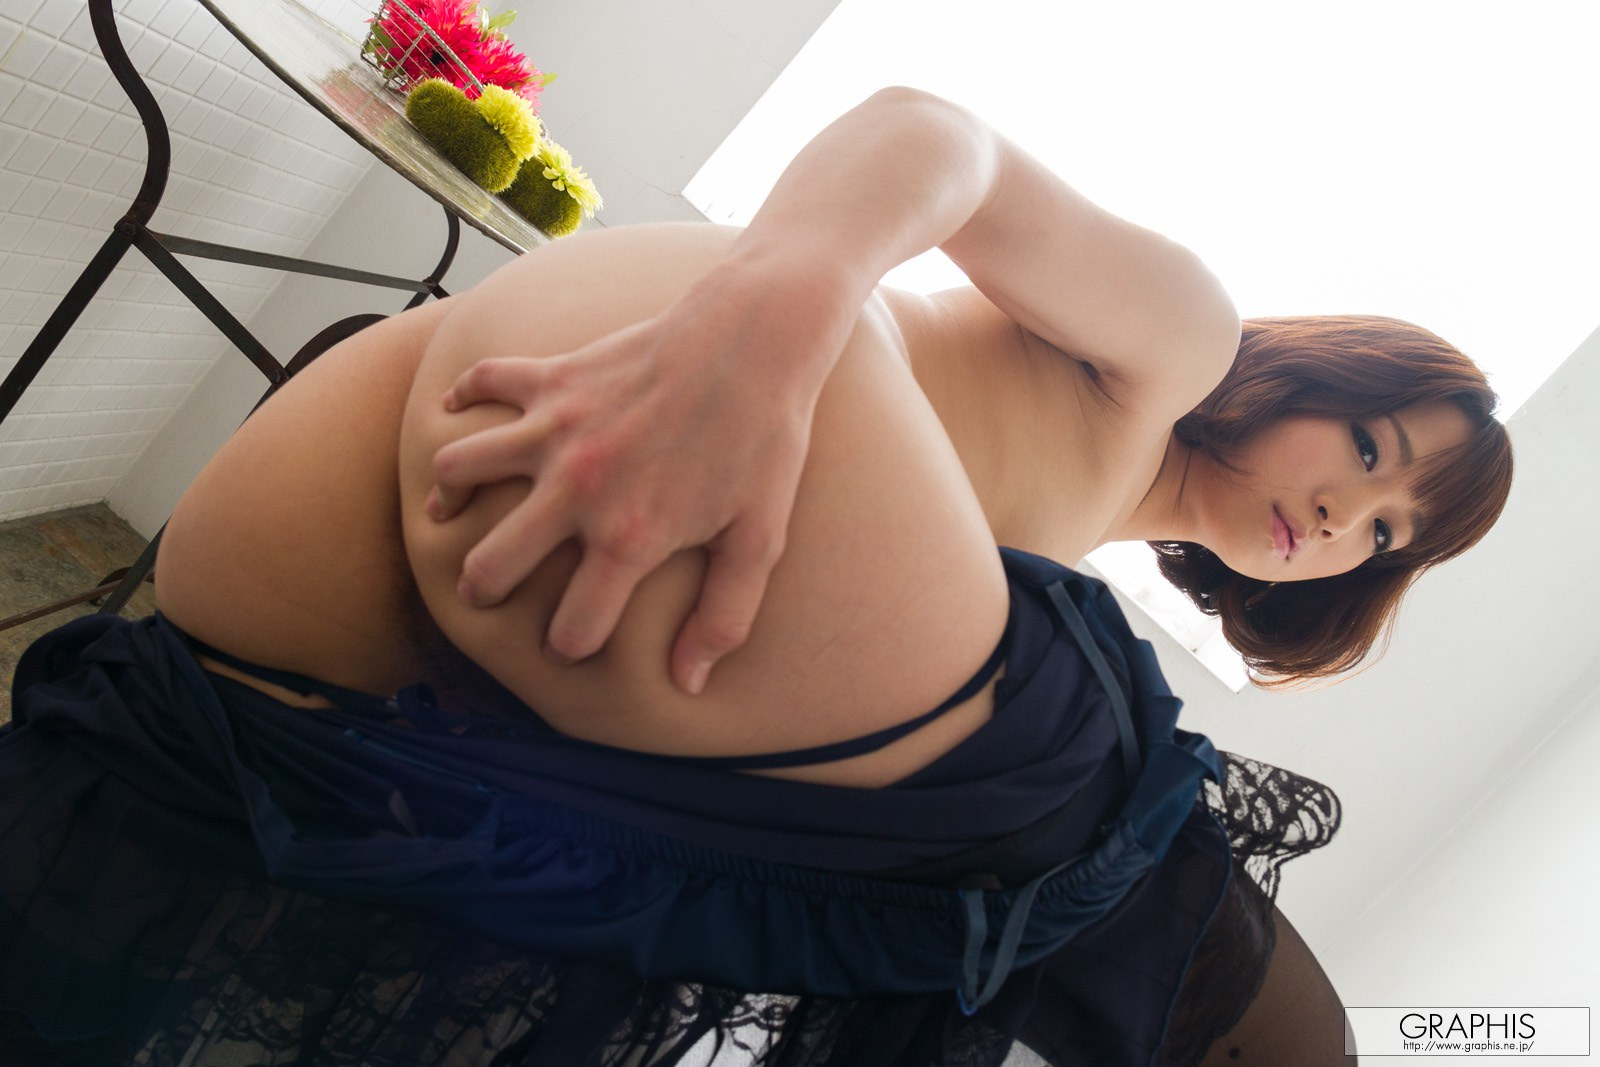 mayu-kamiya-bathroom-black-stockings-asian-naked-graphis-14